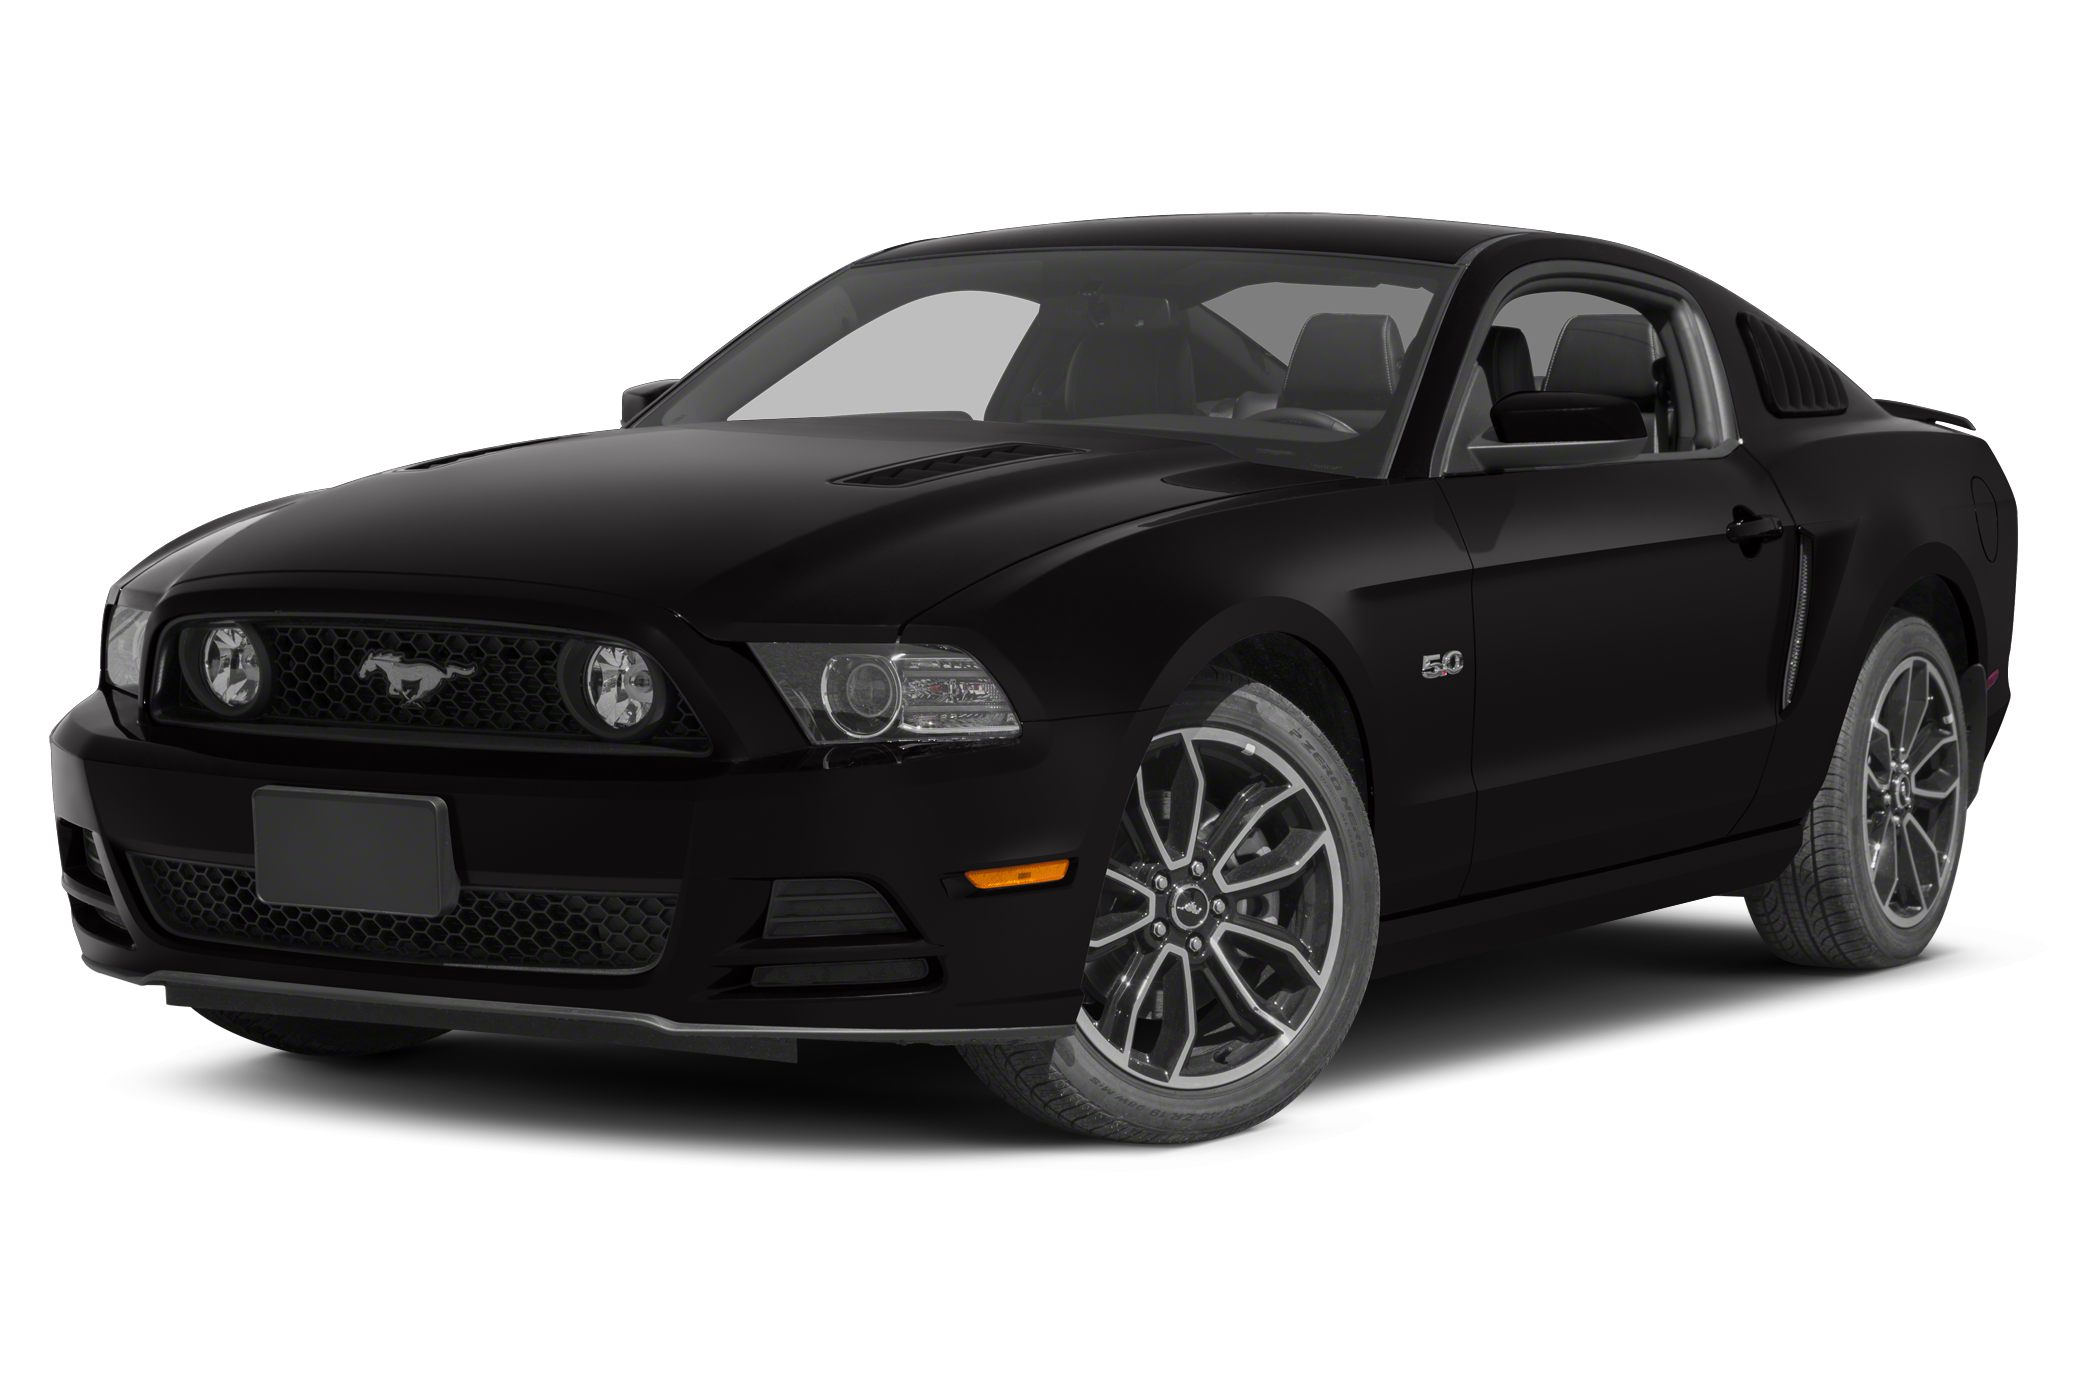 2014 Ford Mustang  This 2014 Ford Mustang will sell fast ABS Brakes Based on the excellent conditi